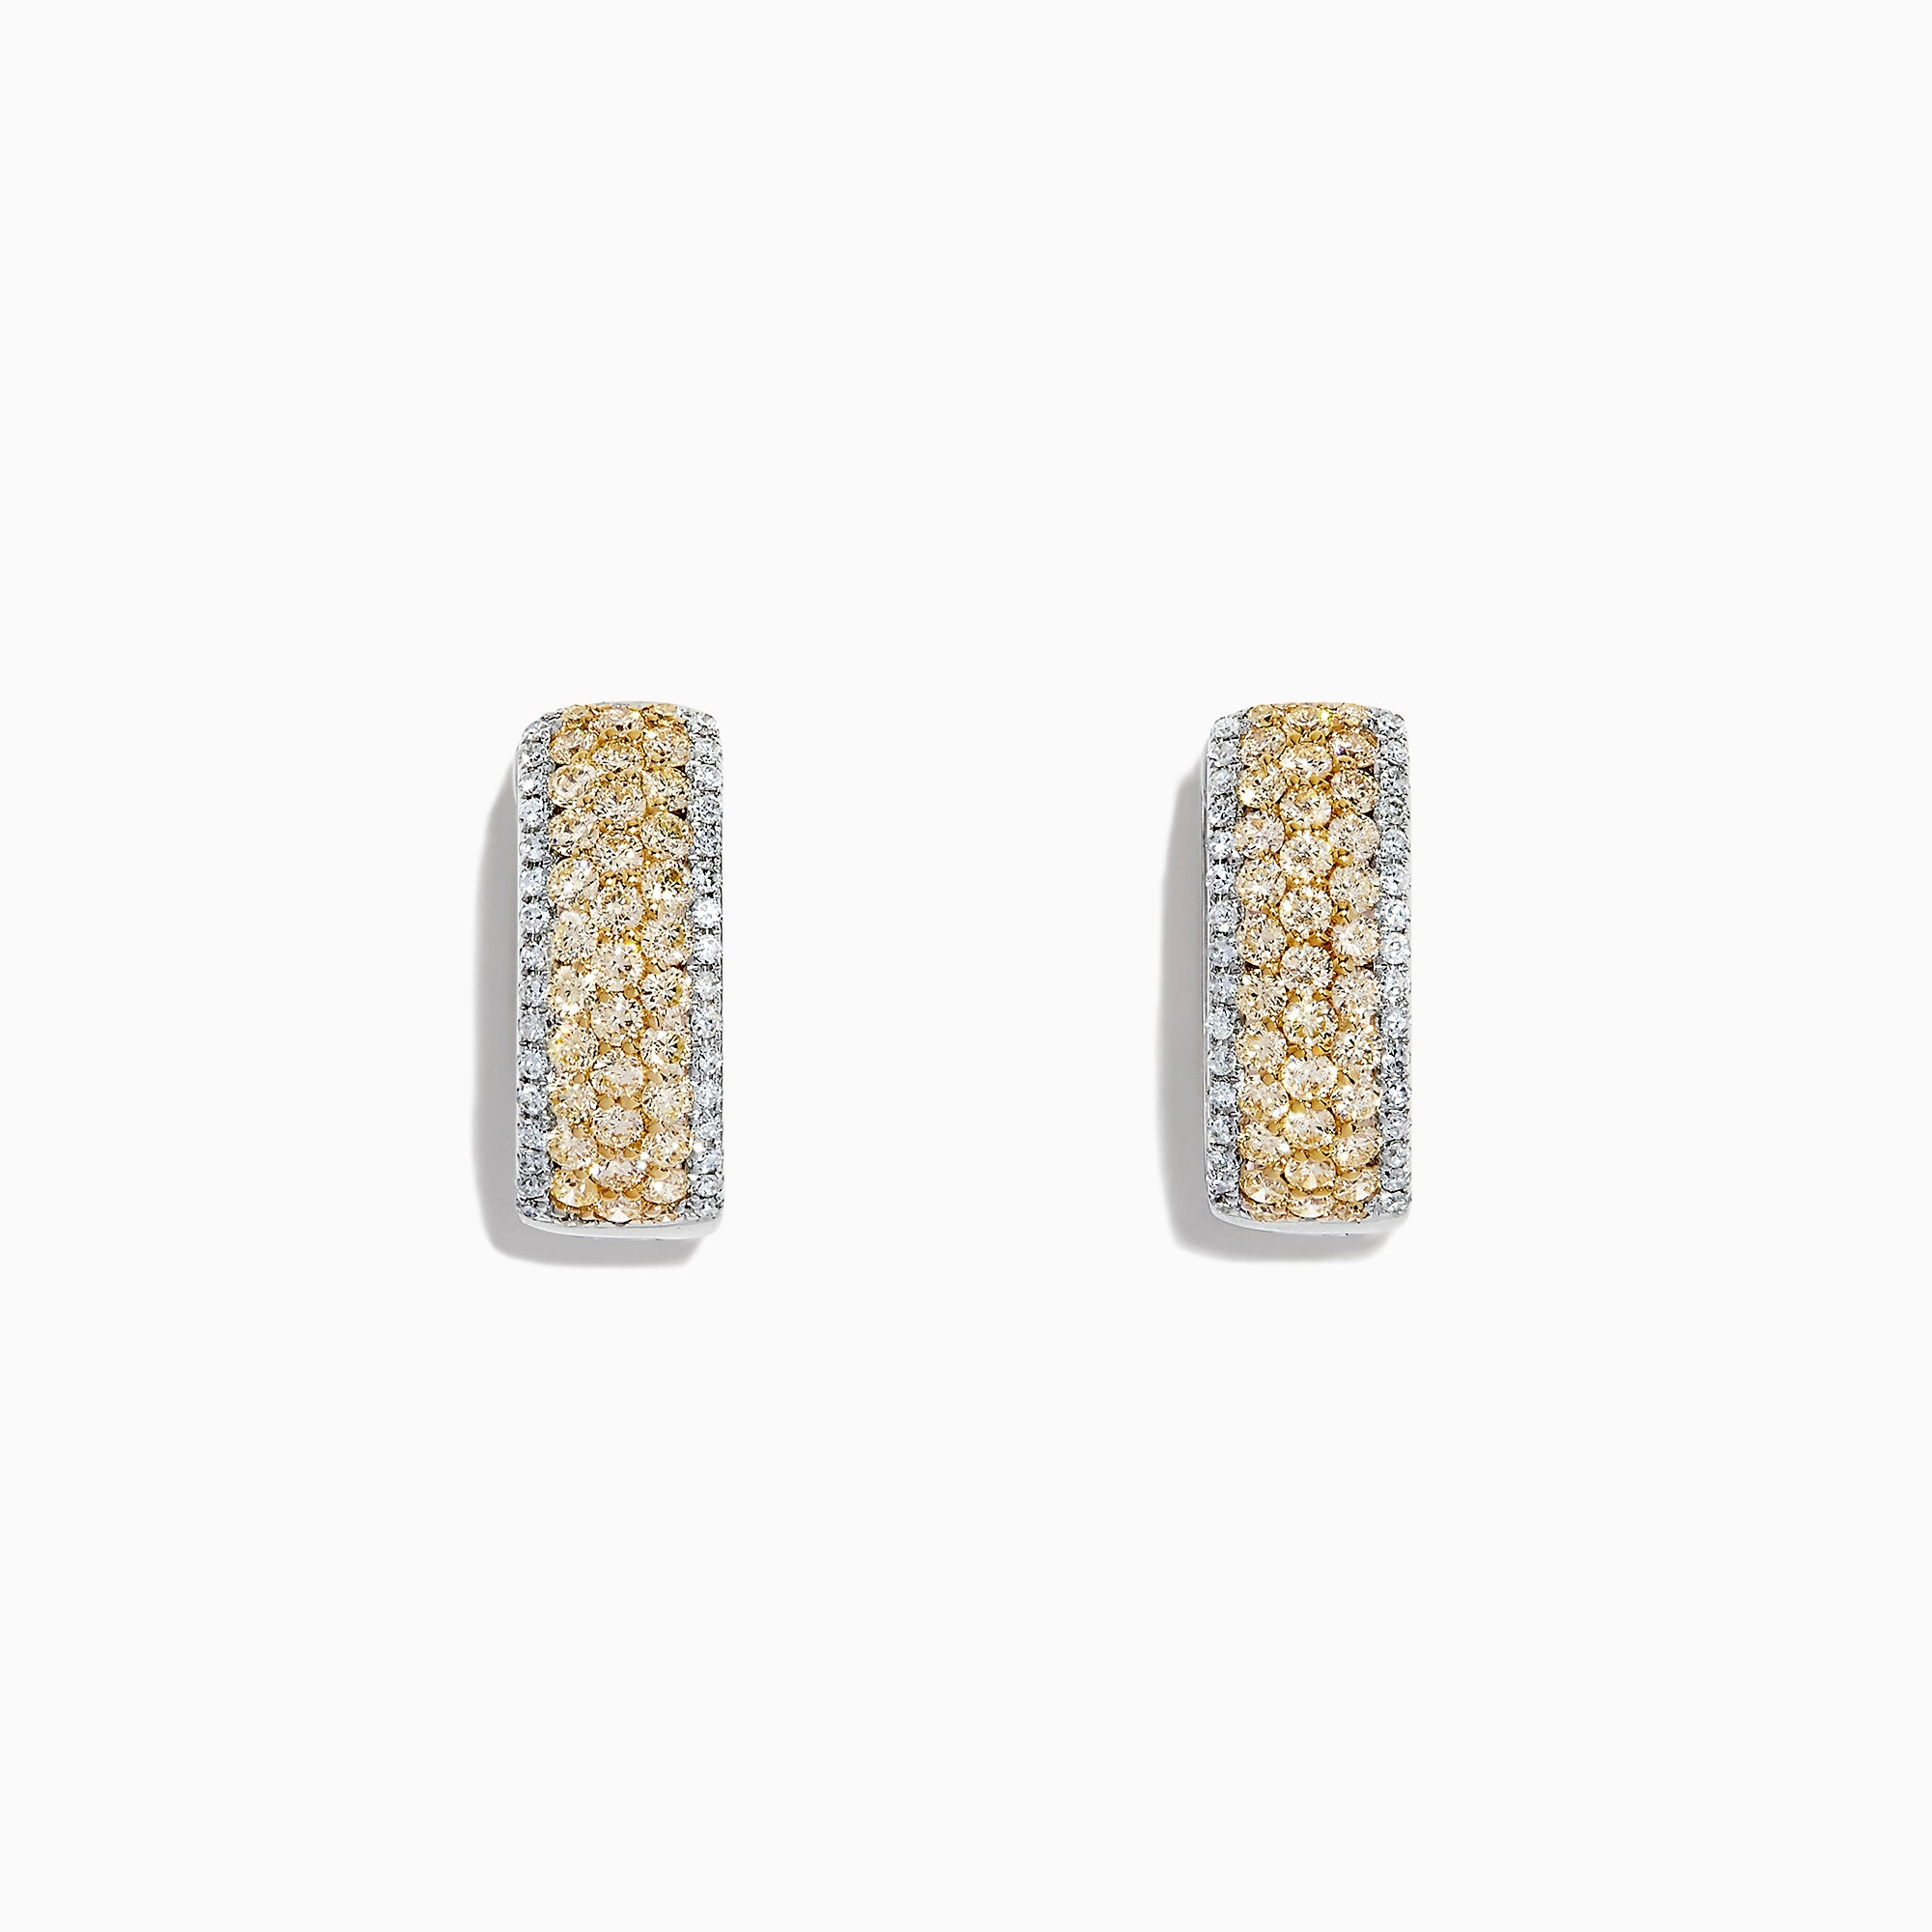 Effy Canare 14K Gold Yellow & White Diamond Huggie Hoop Earrings, 1.26 TCW